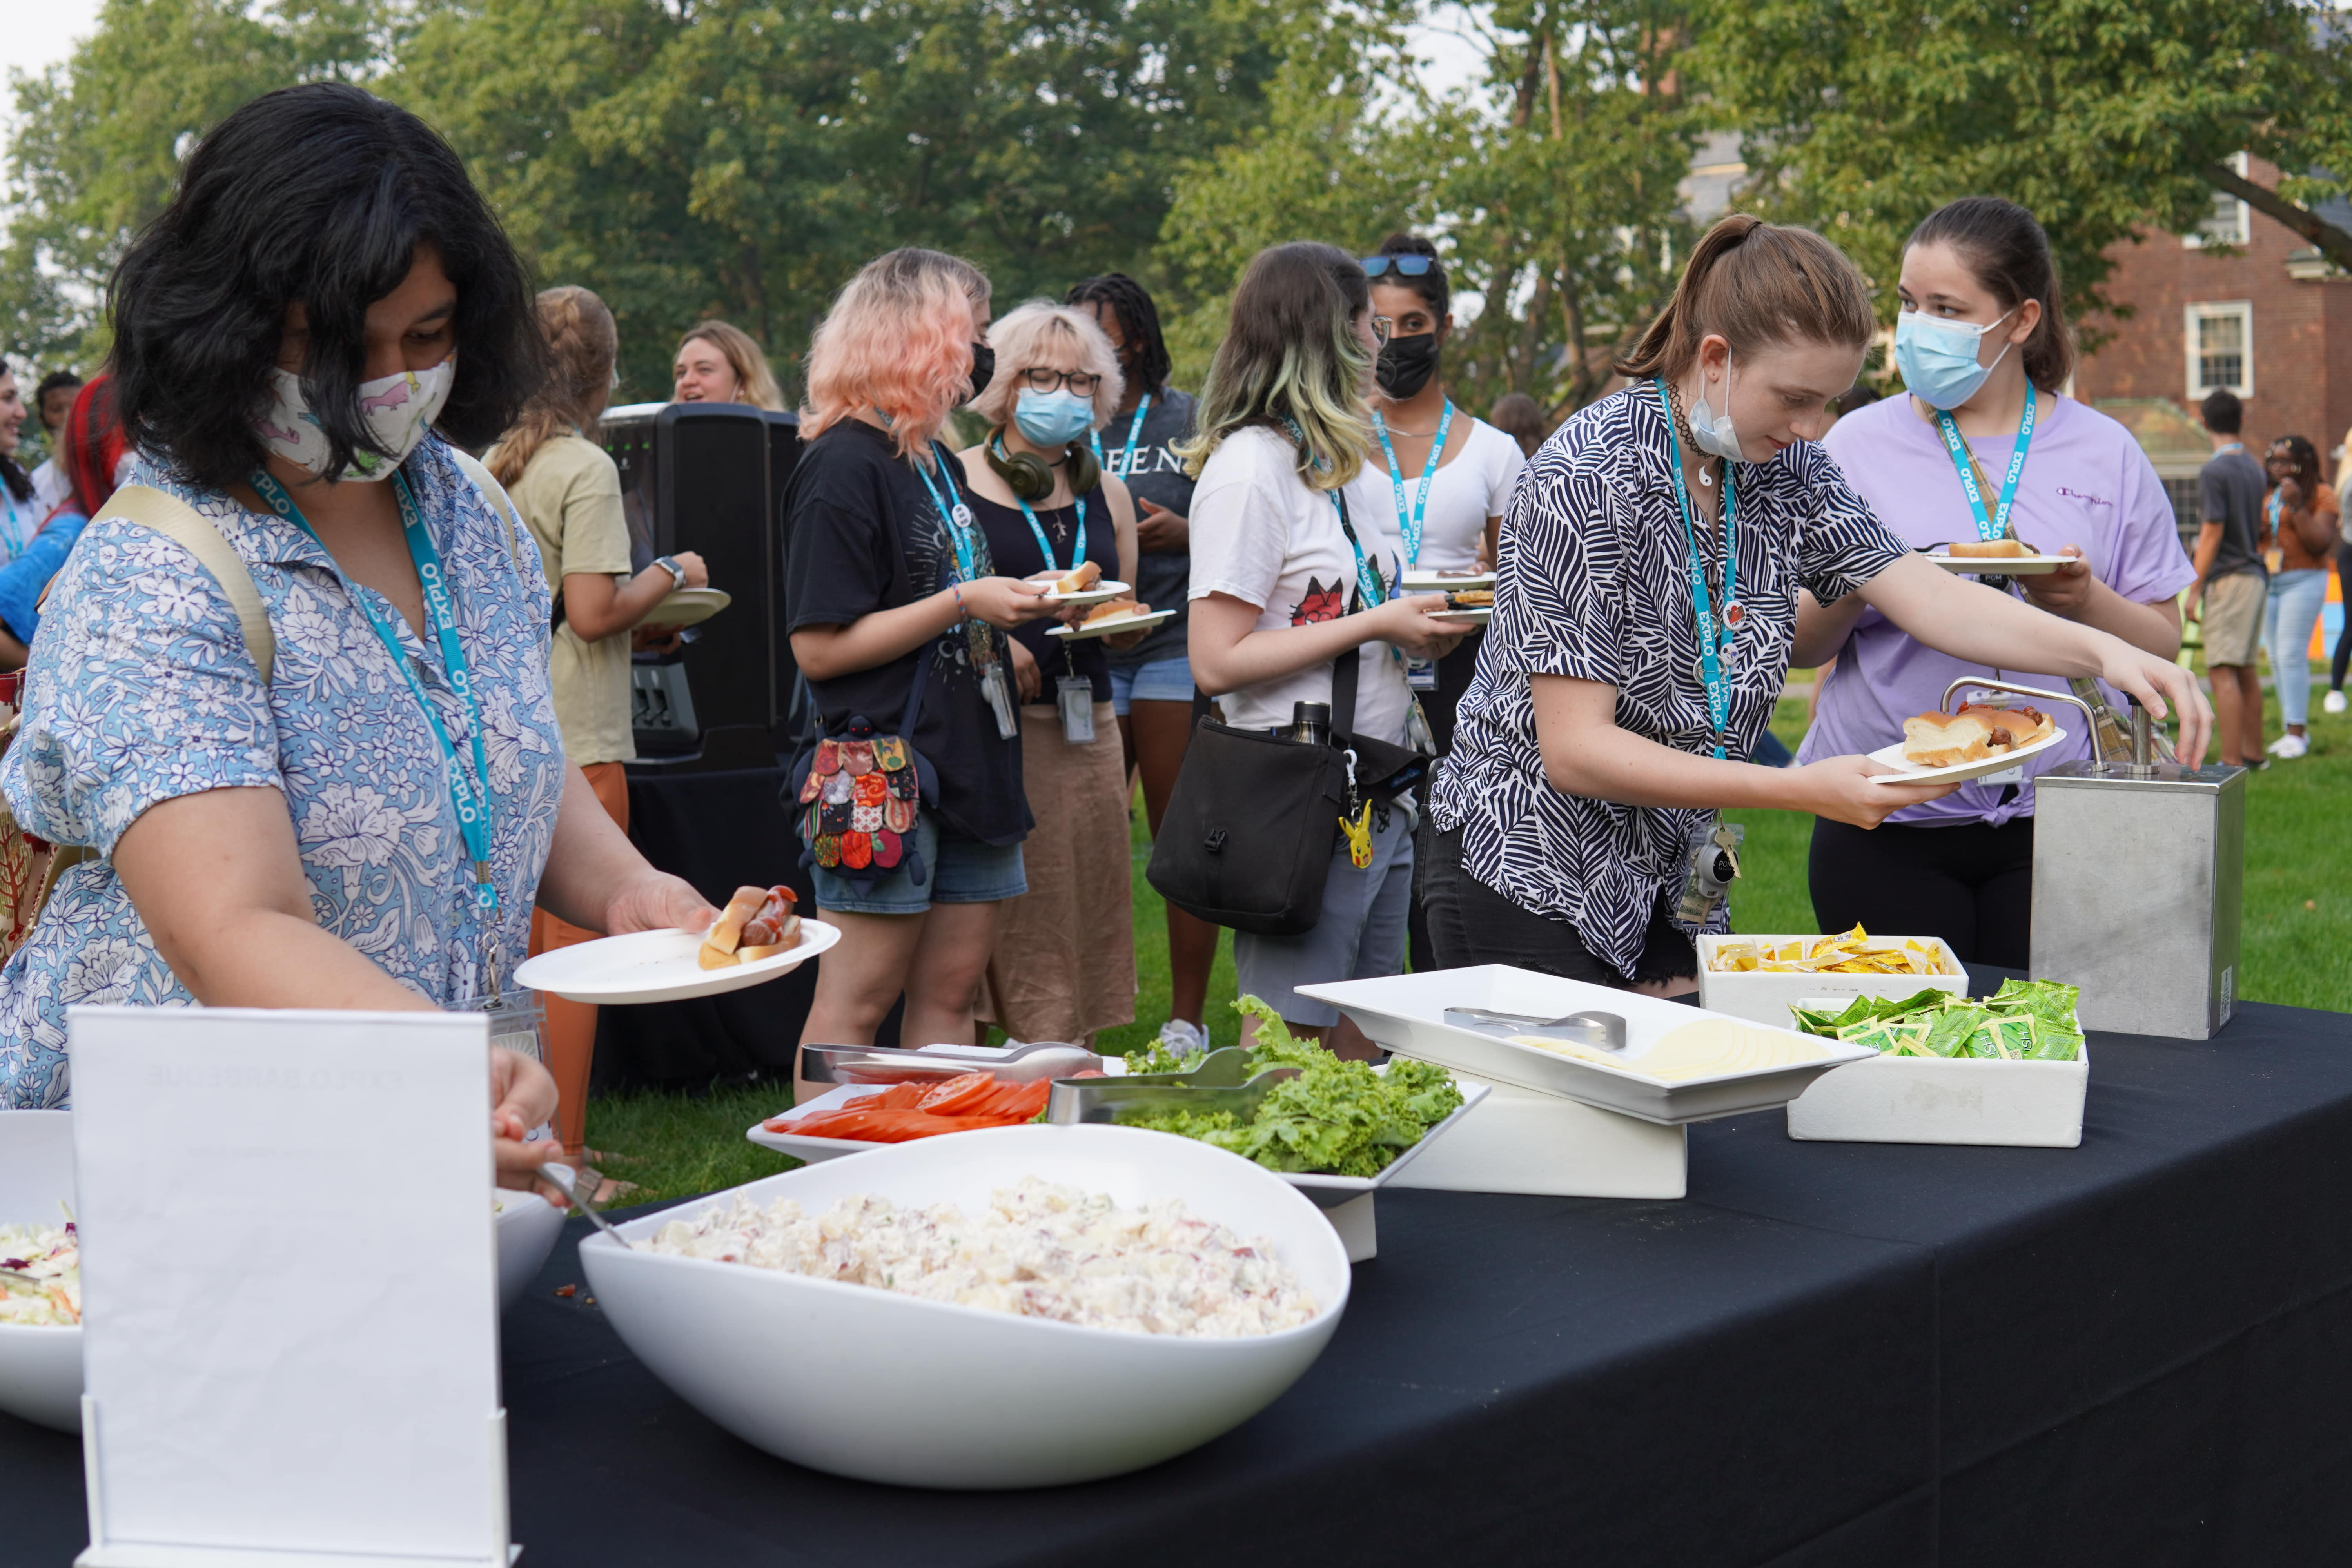 Students surround the side table where one grabs a spoonful of potato salad and another pumps ketchup onto their burger.